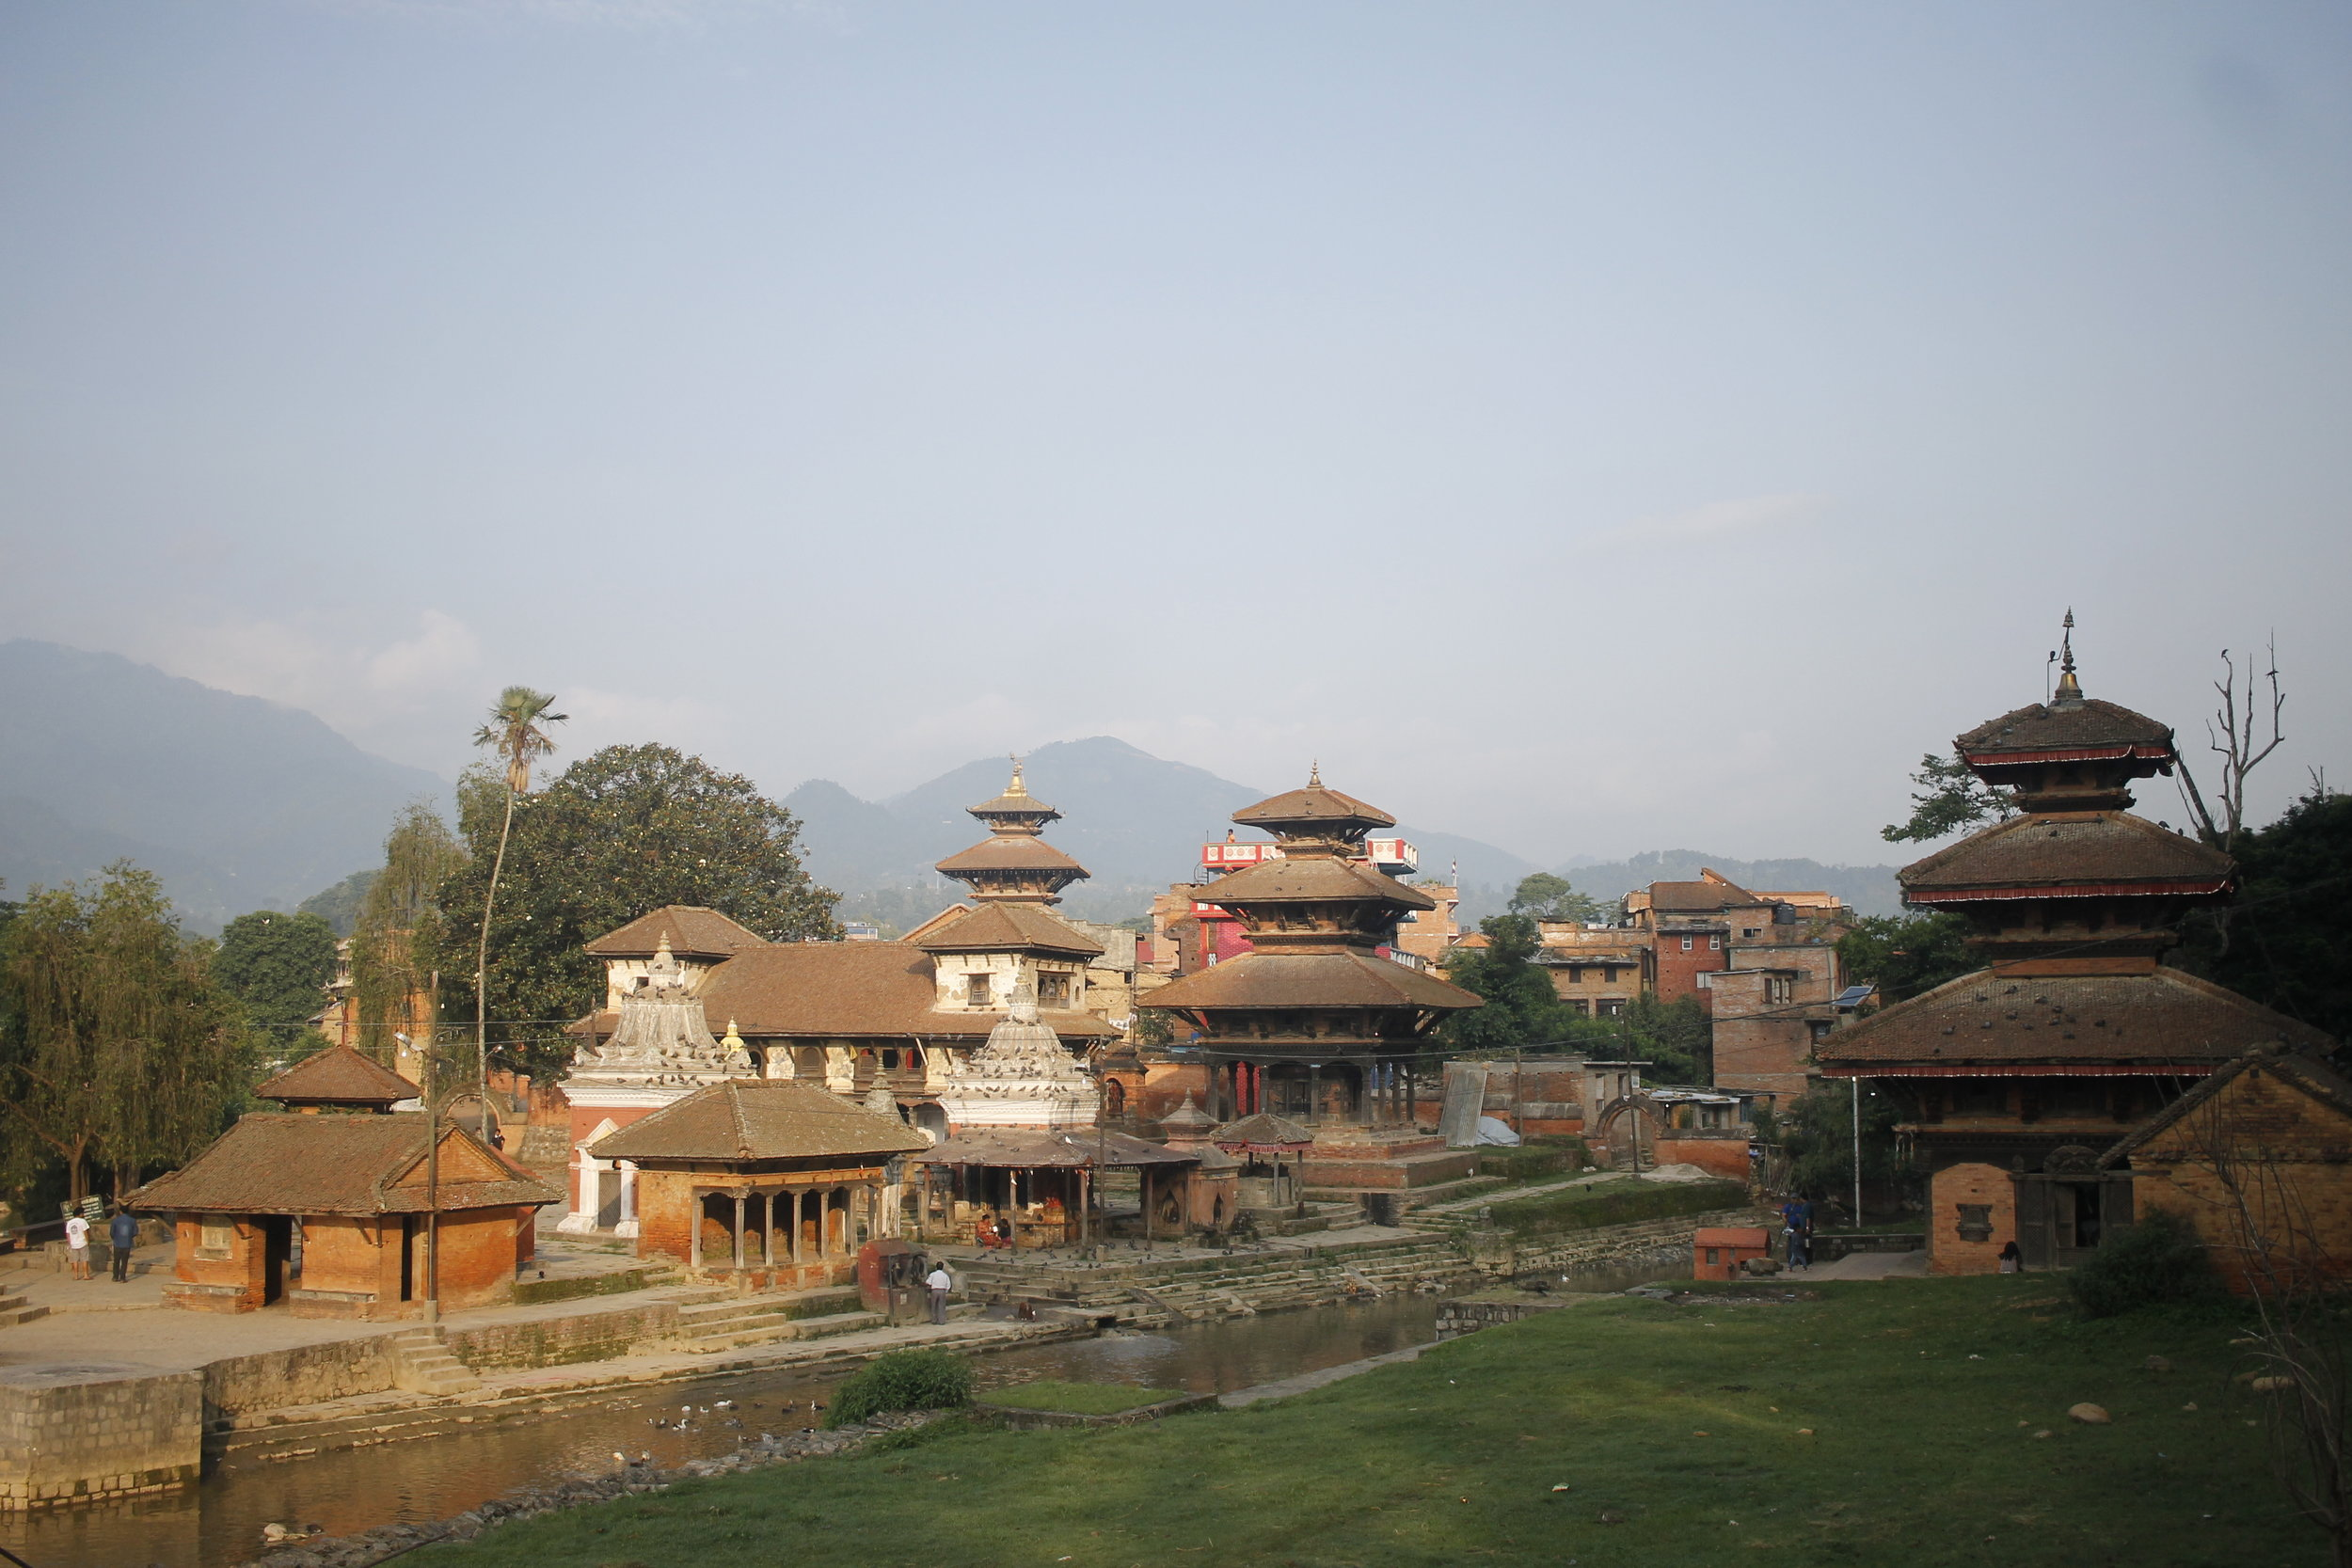 Still contemplative shots   - Capturing the beauty and spirituality of Nepal